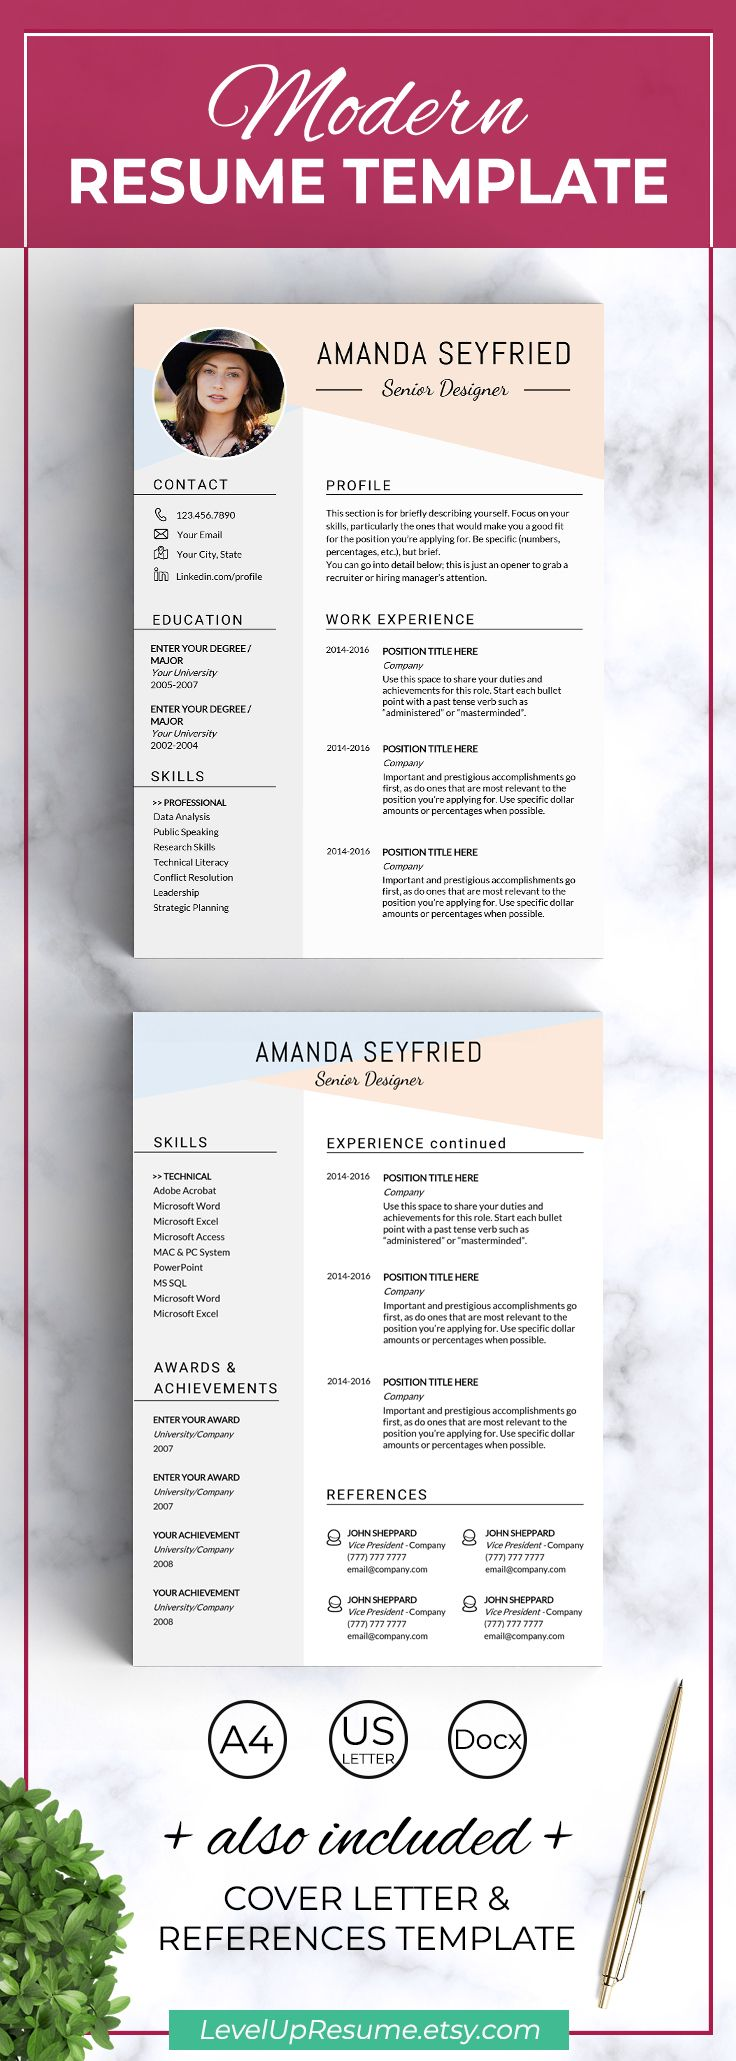 Check out my new creative RESUME TEMPLATE for Microsoft Word in A4 and US Letter size.    Includes Resume Template + References + Cover Letter + Instructions Guide.  #resume #resumetemplate #job #career #jobsearch